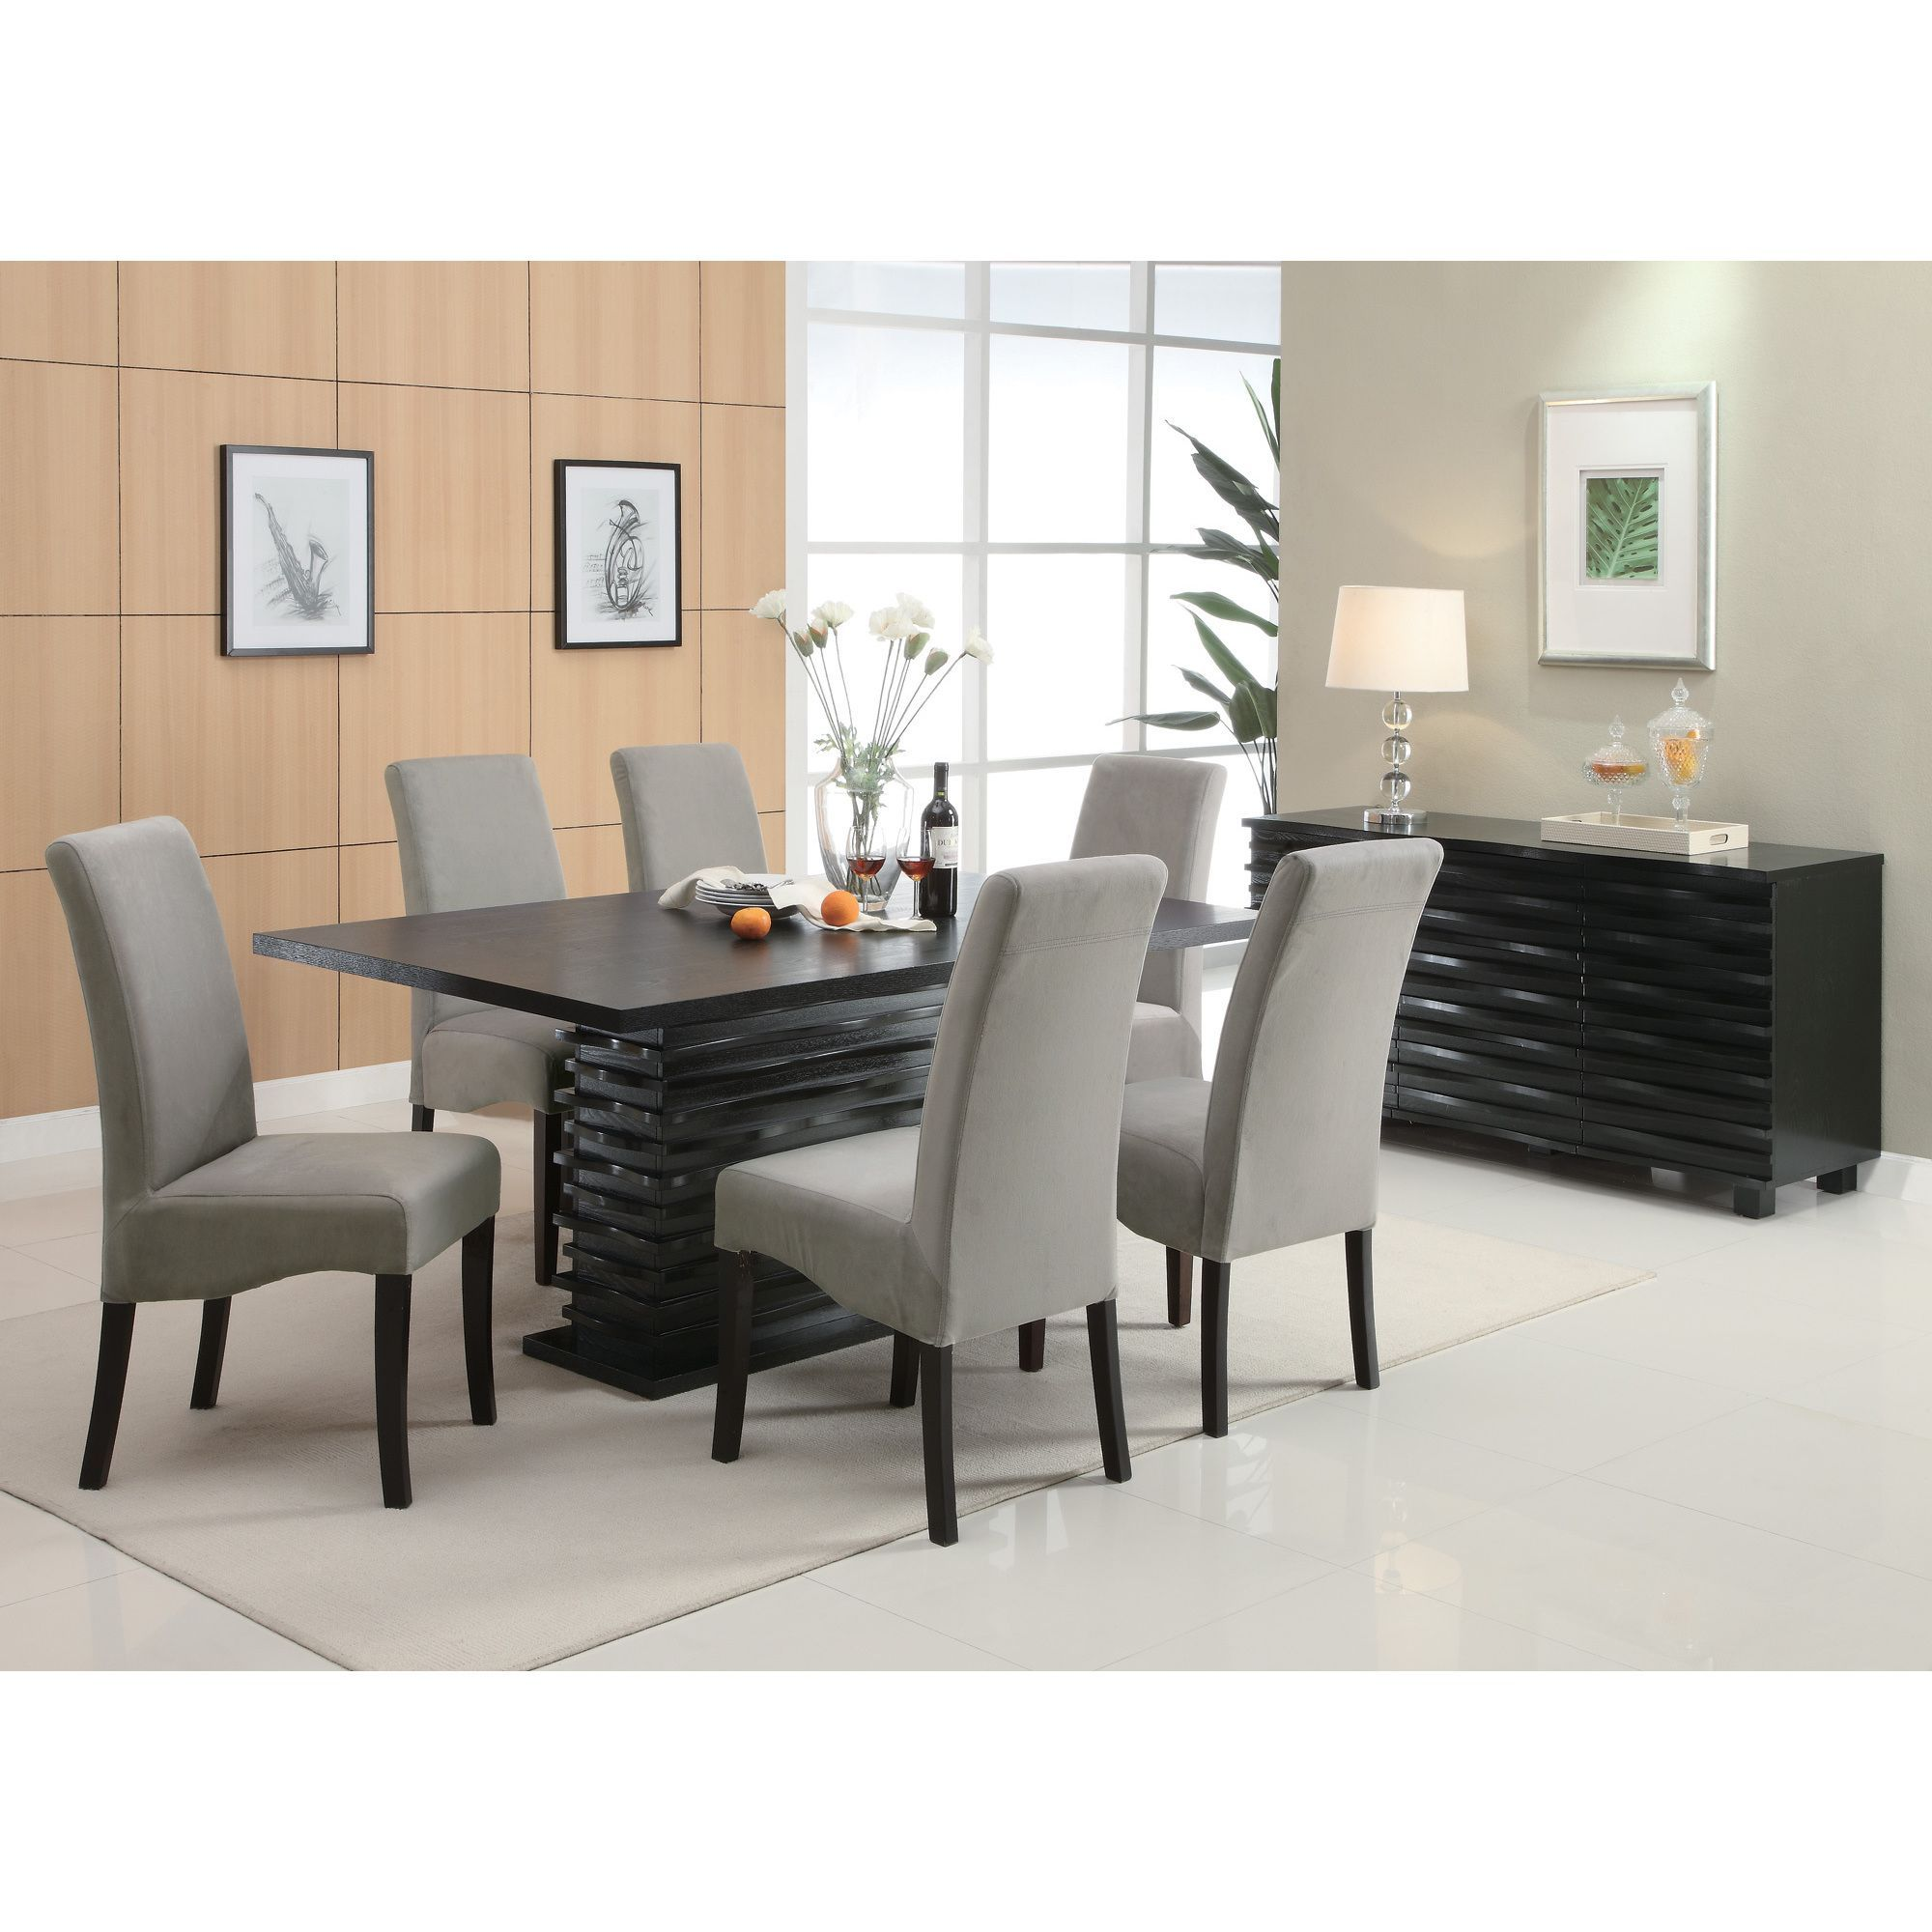 Coaster Company Contemporary 6 Seater Black Wooden Dining Table